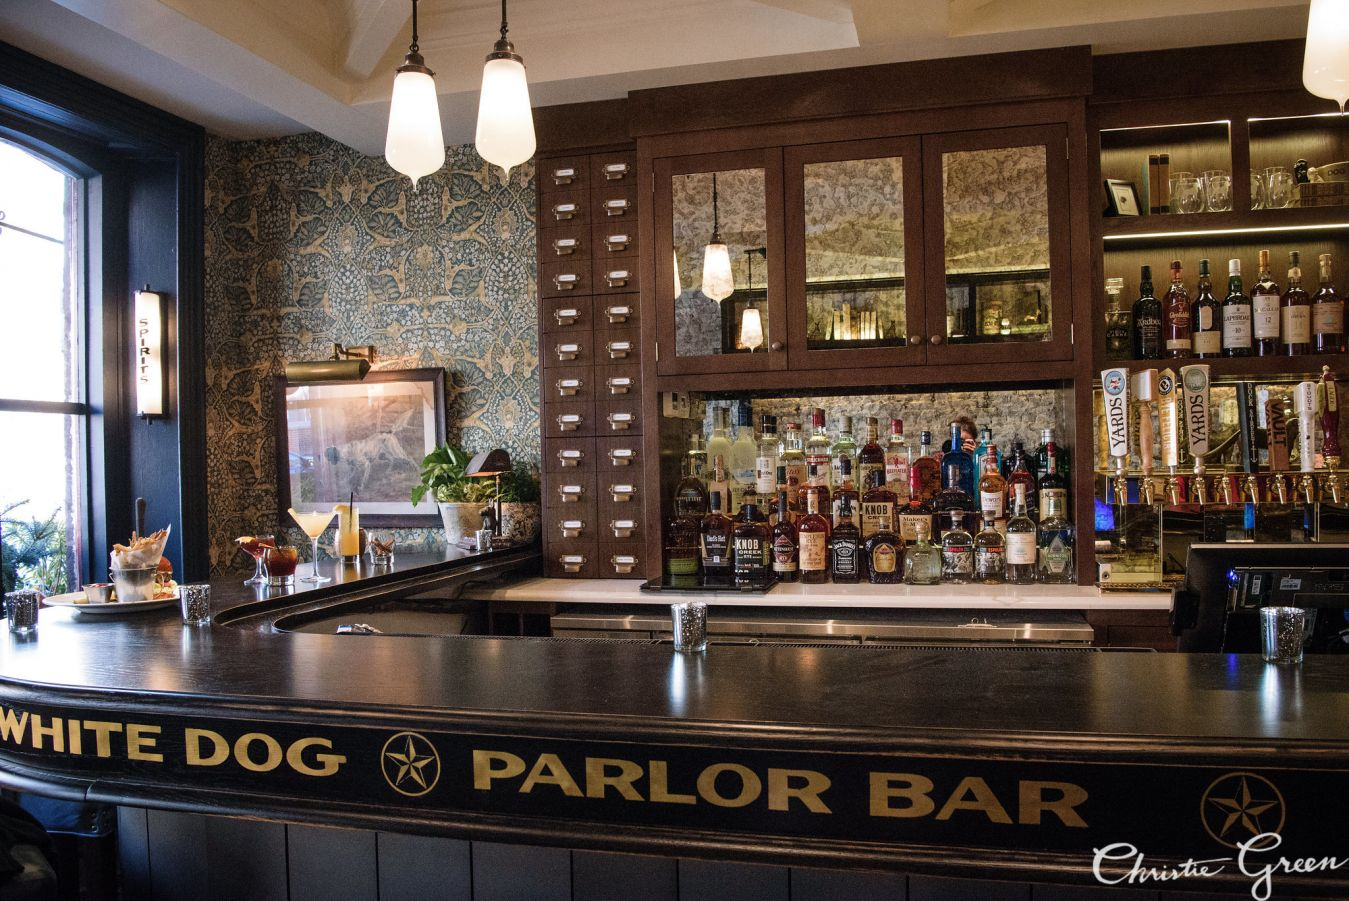 New Parlor Bar